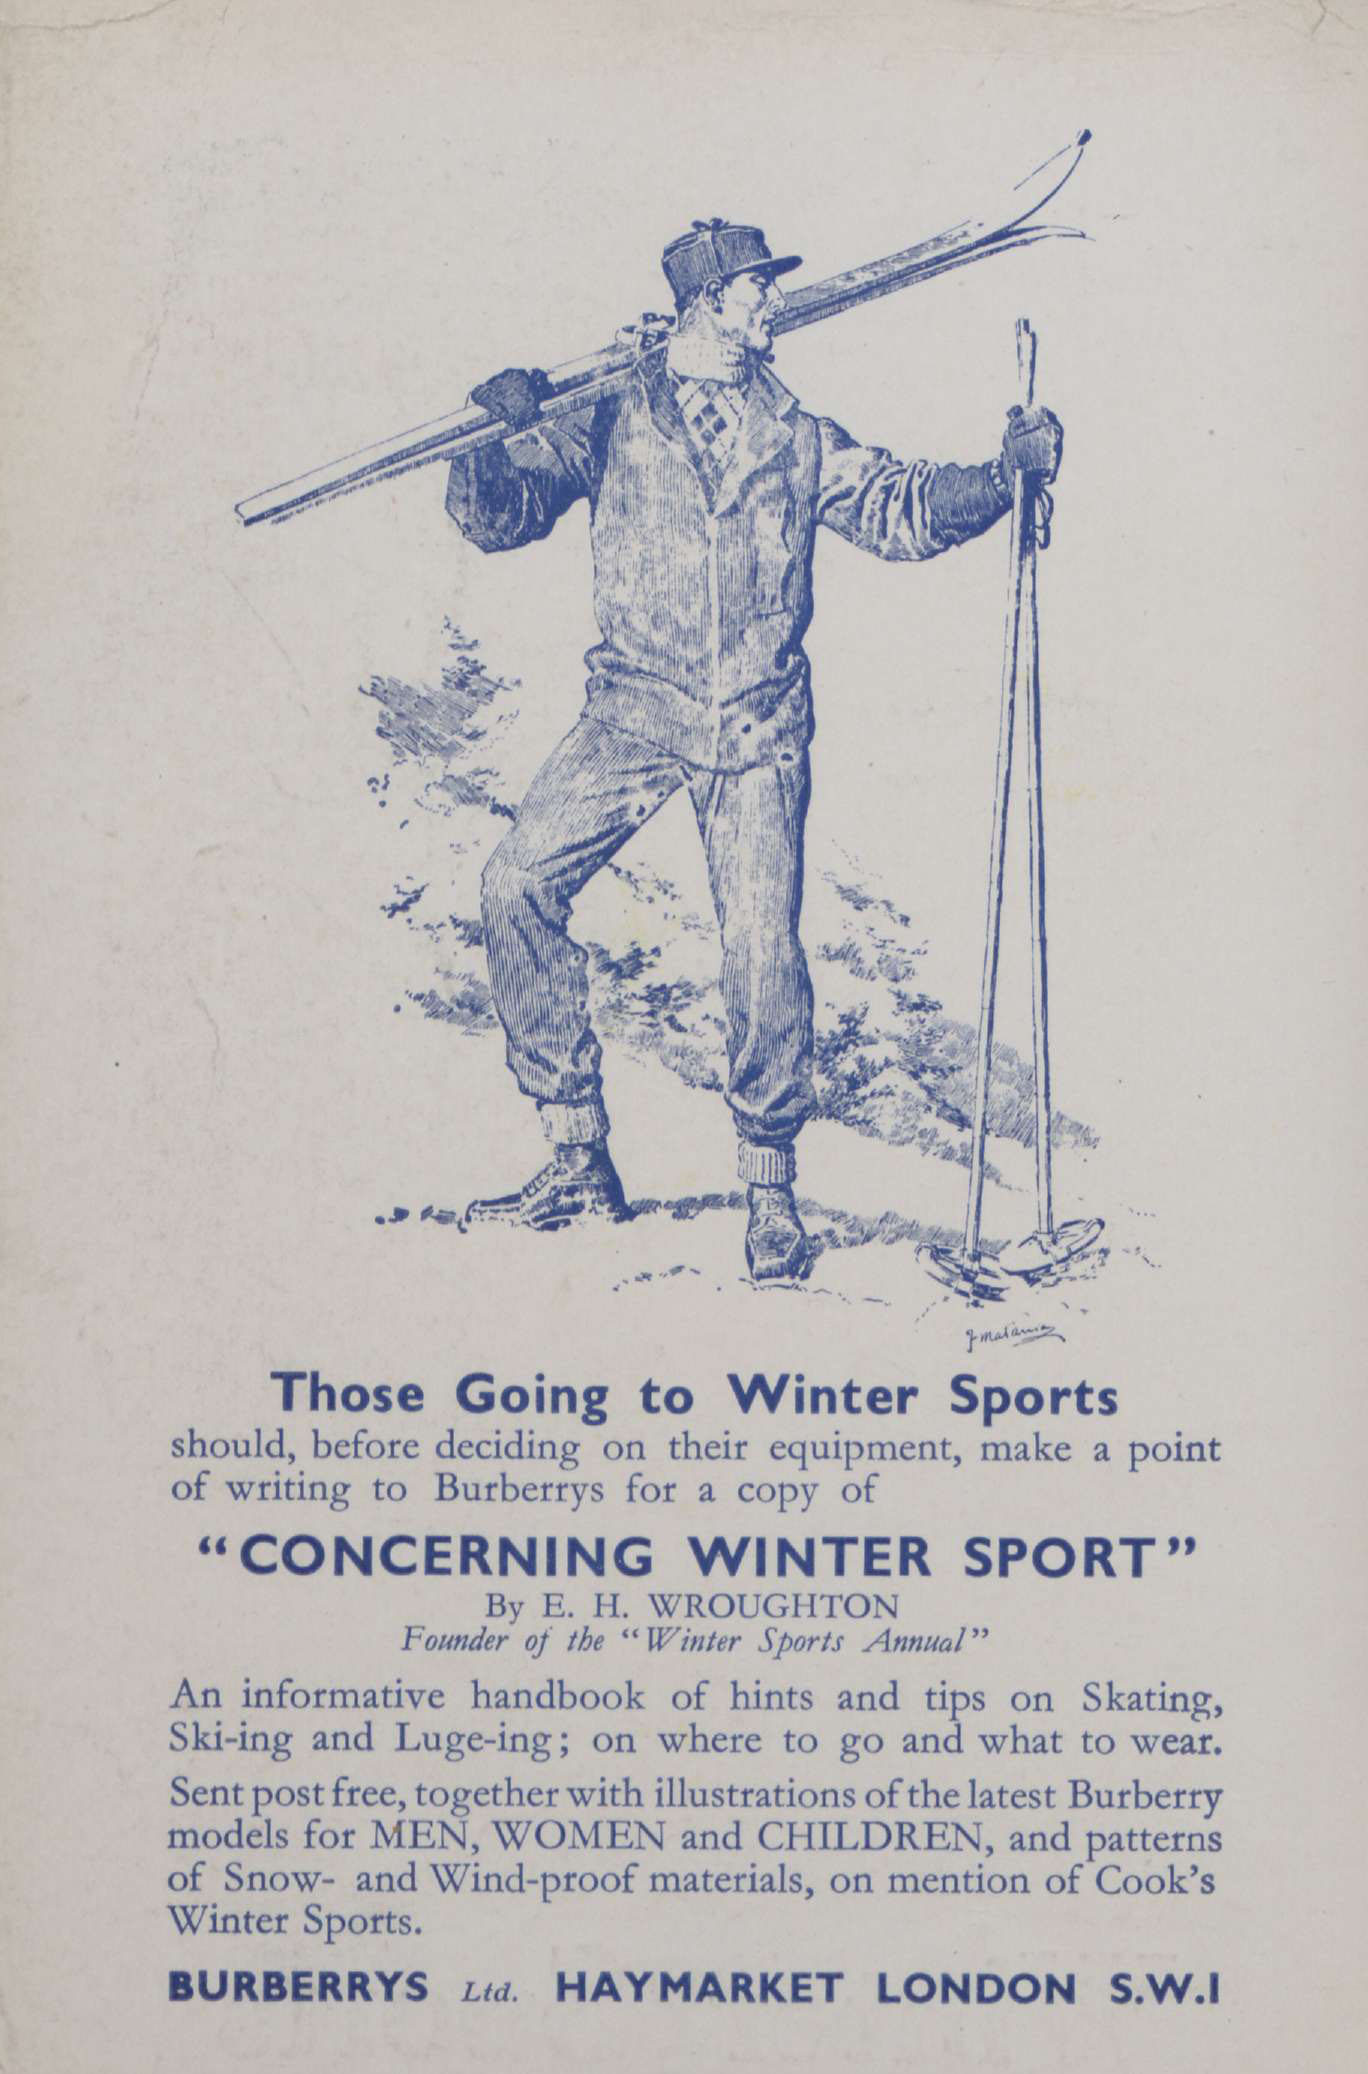 Winter Sports 1931-32. © Permission granted by Thomas Cook Archives